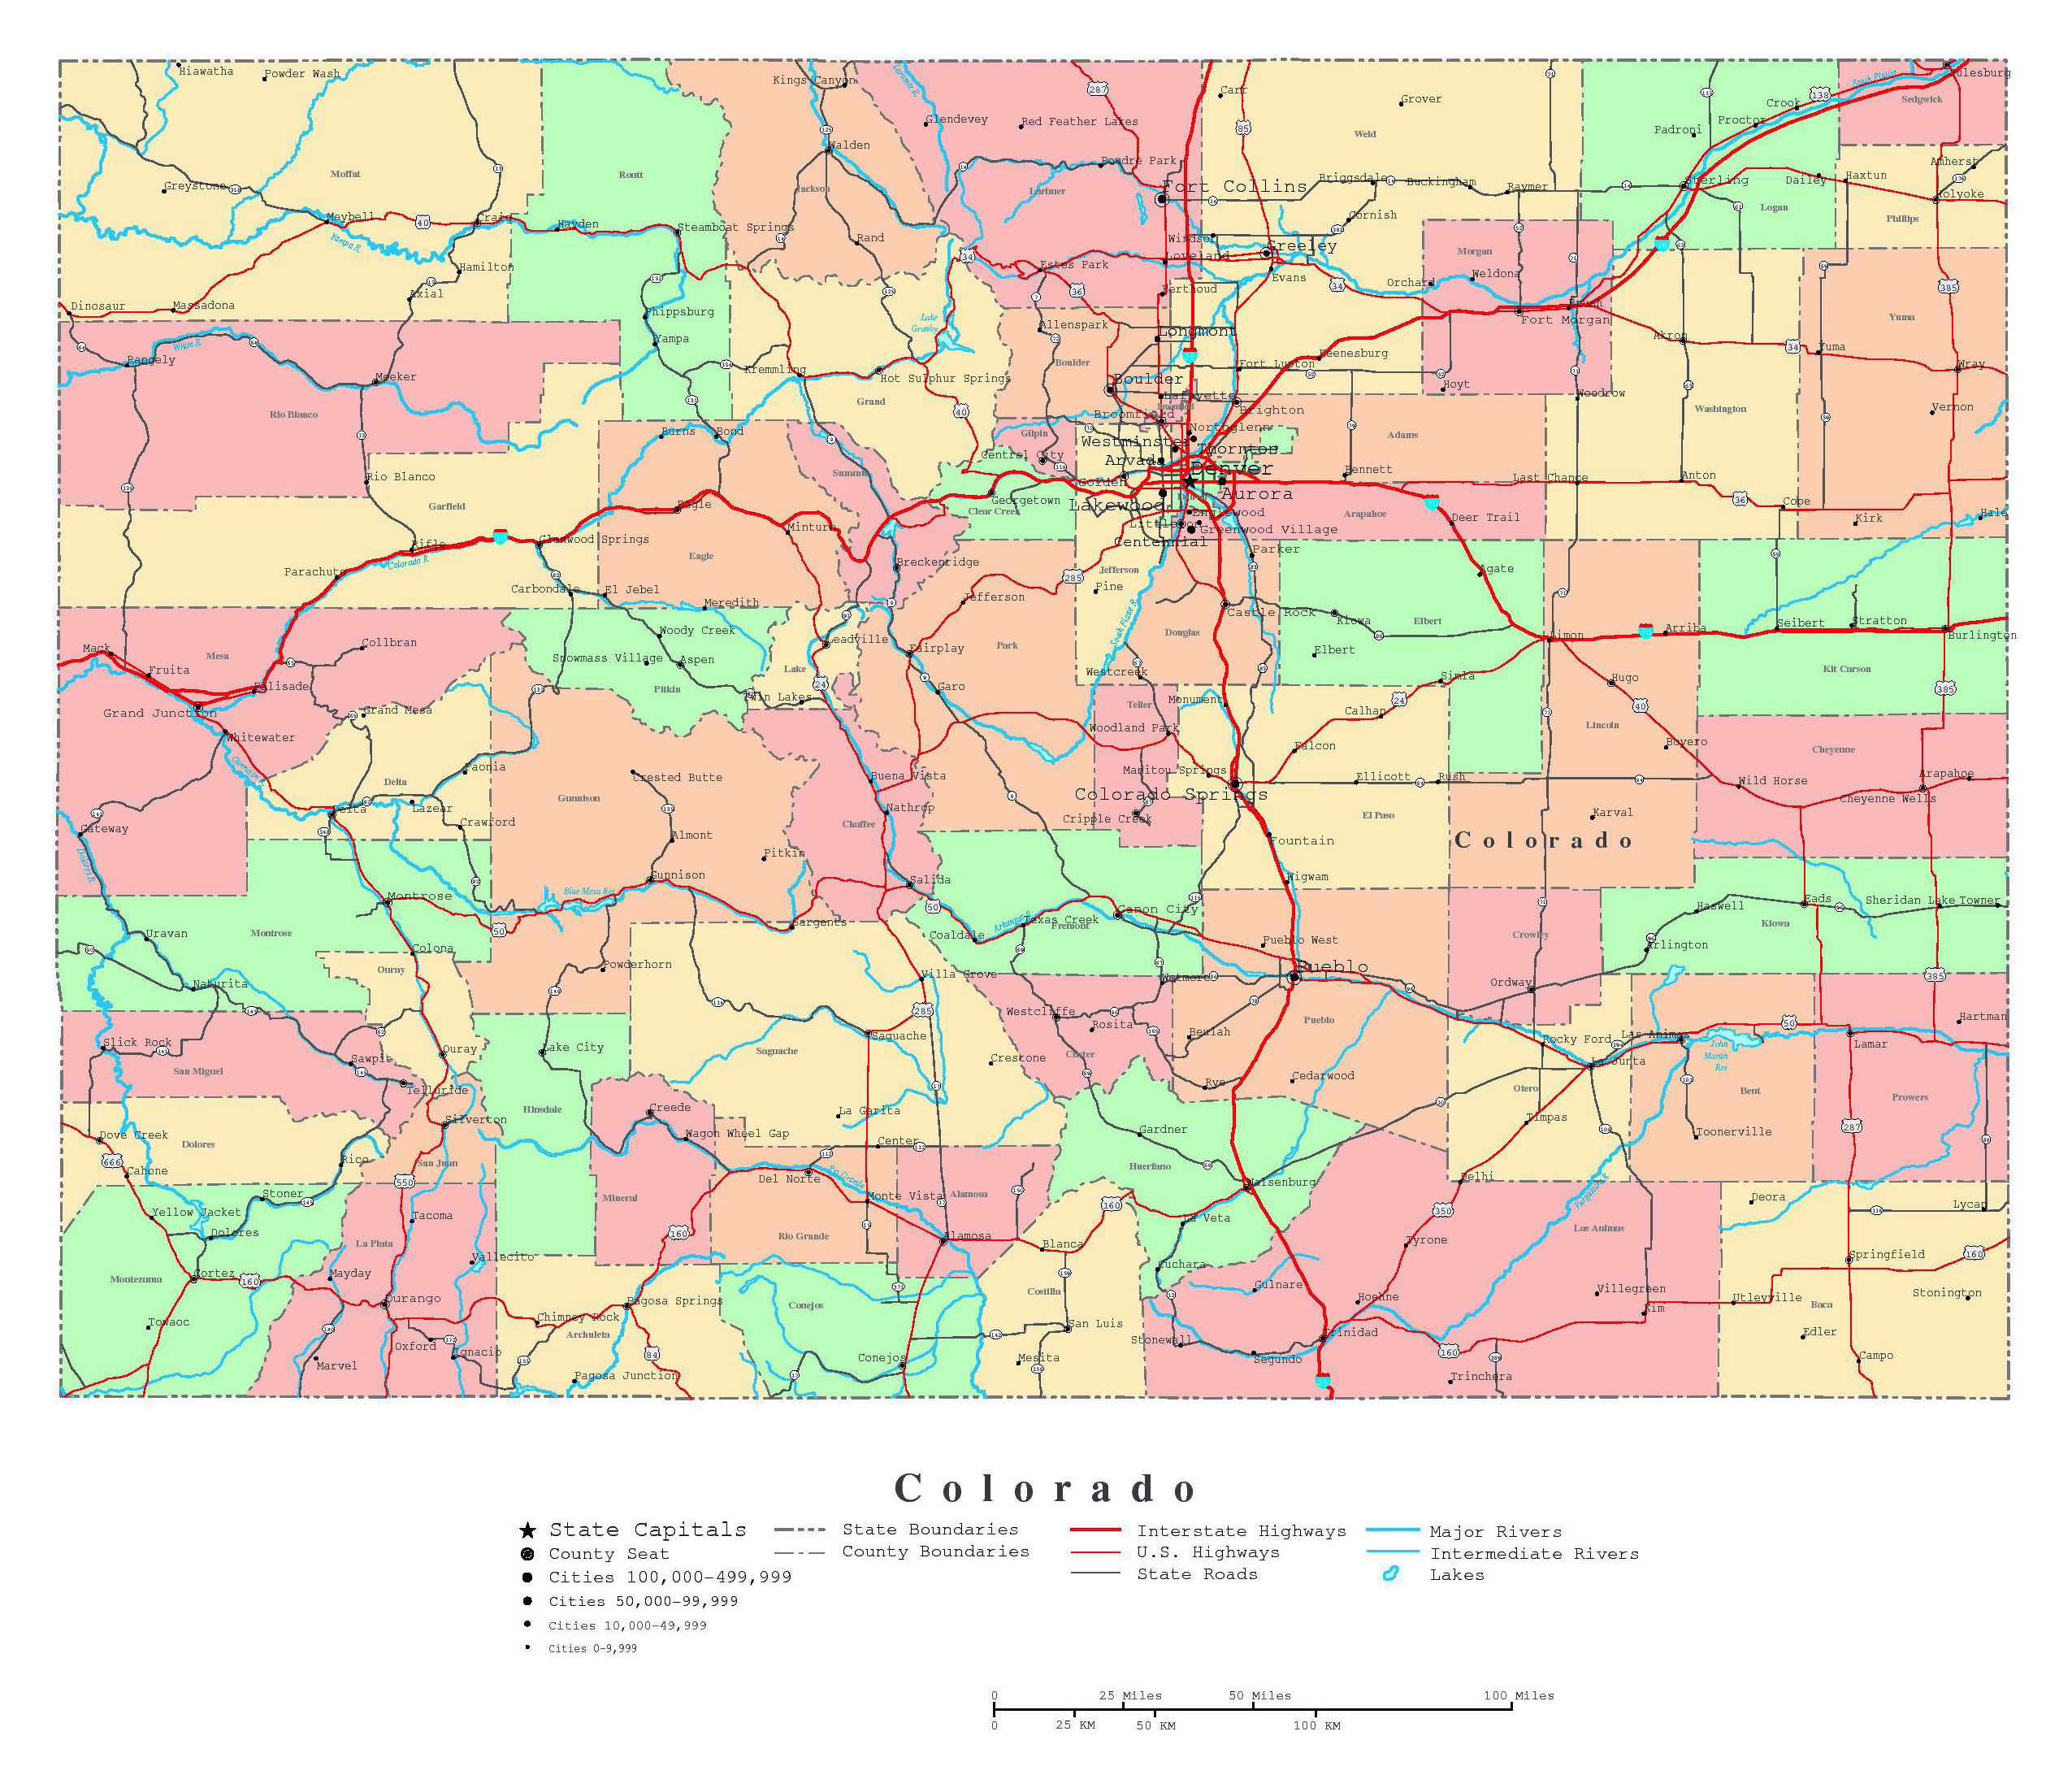 Large Detailed Administrative Map Of Colorado State With Roads - Colorado state map